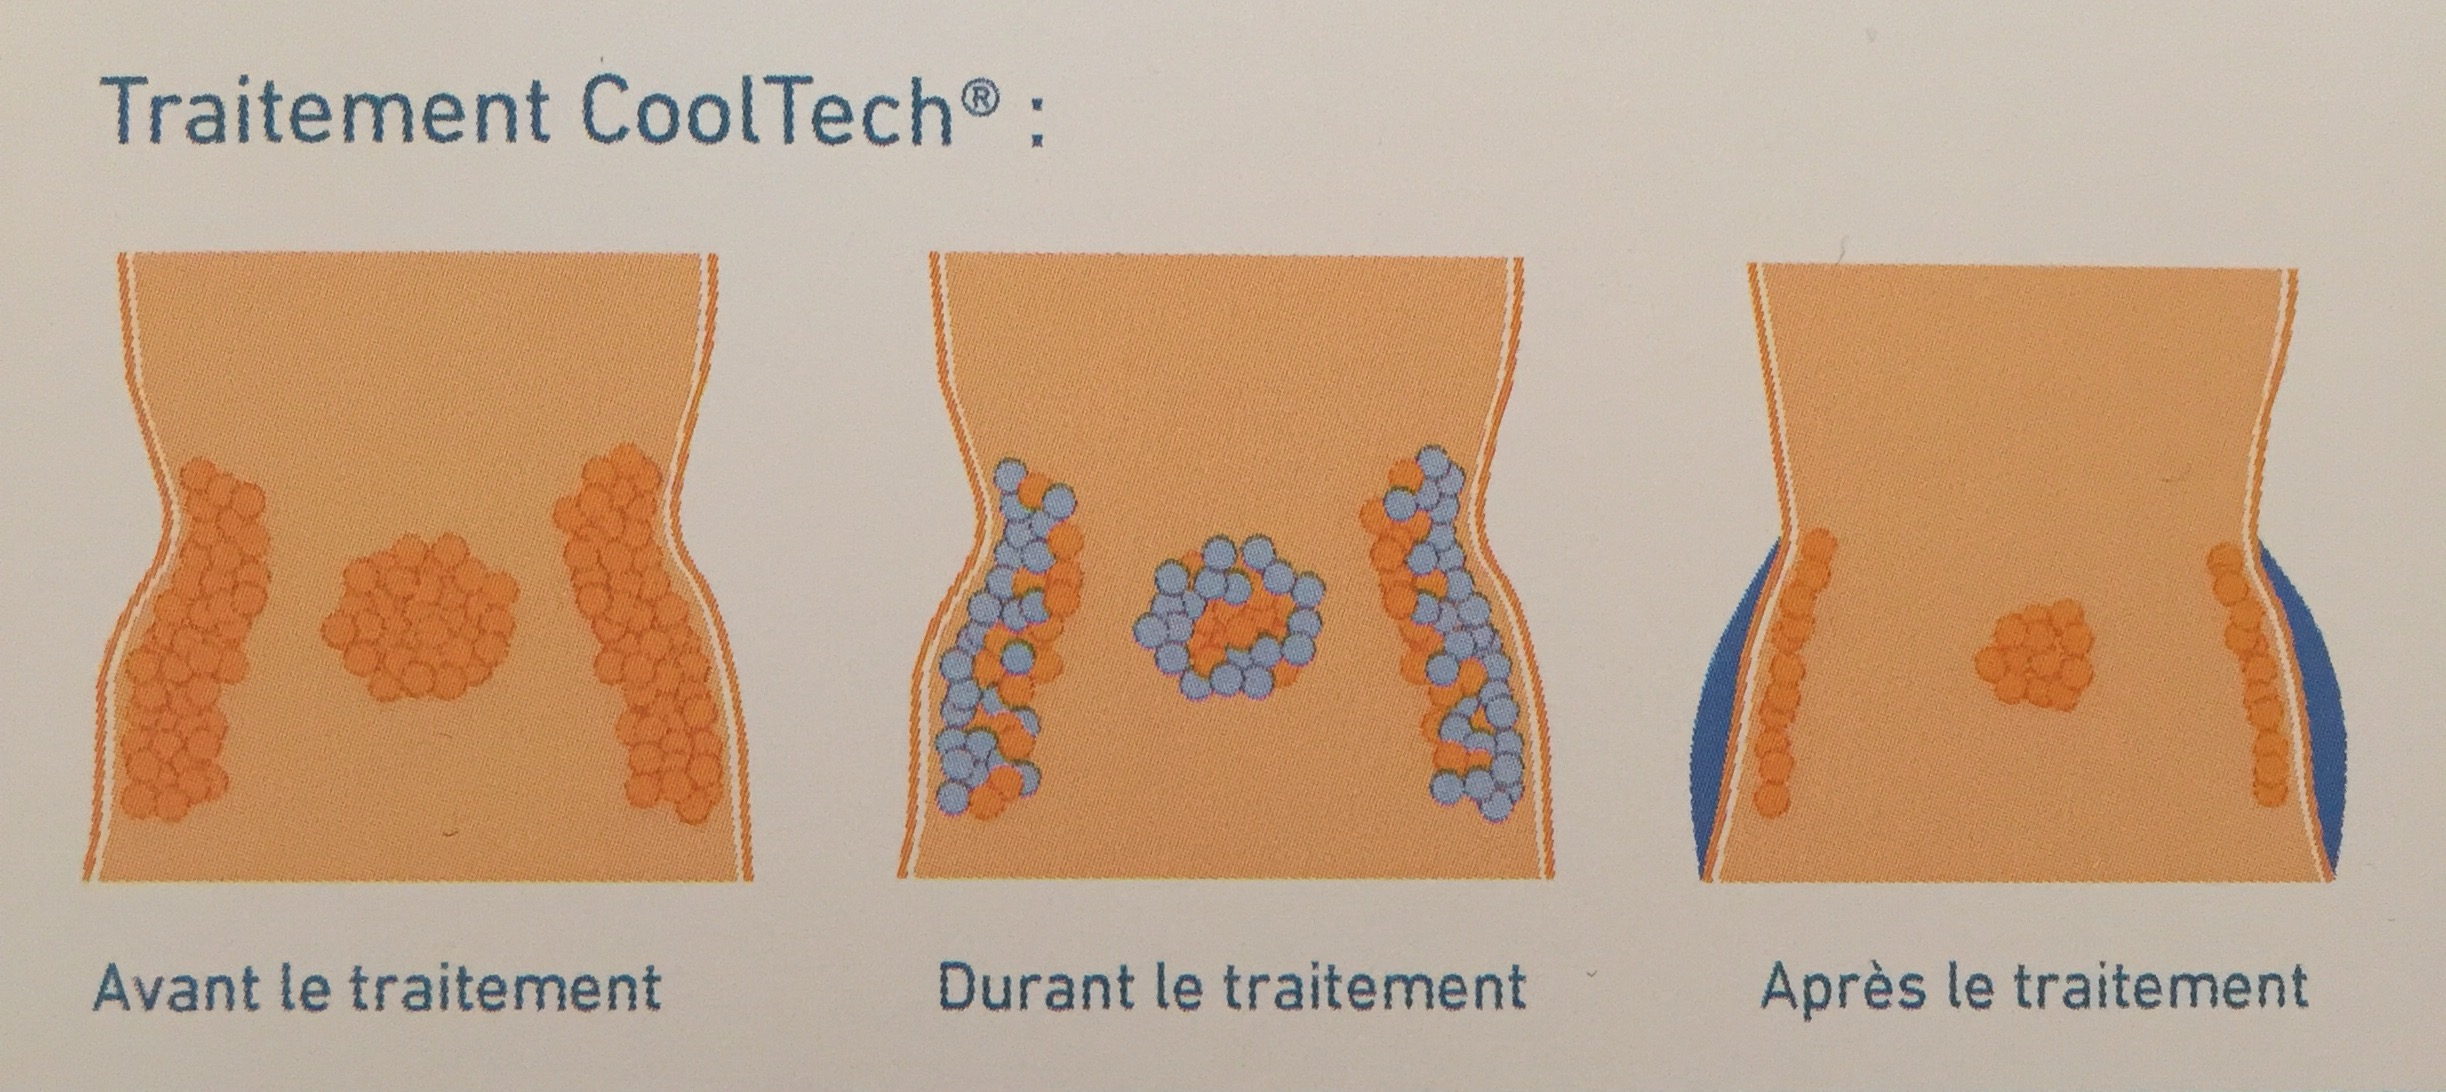 traitement-cooltech